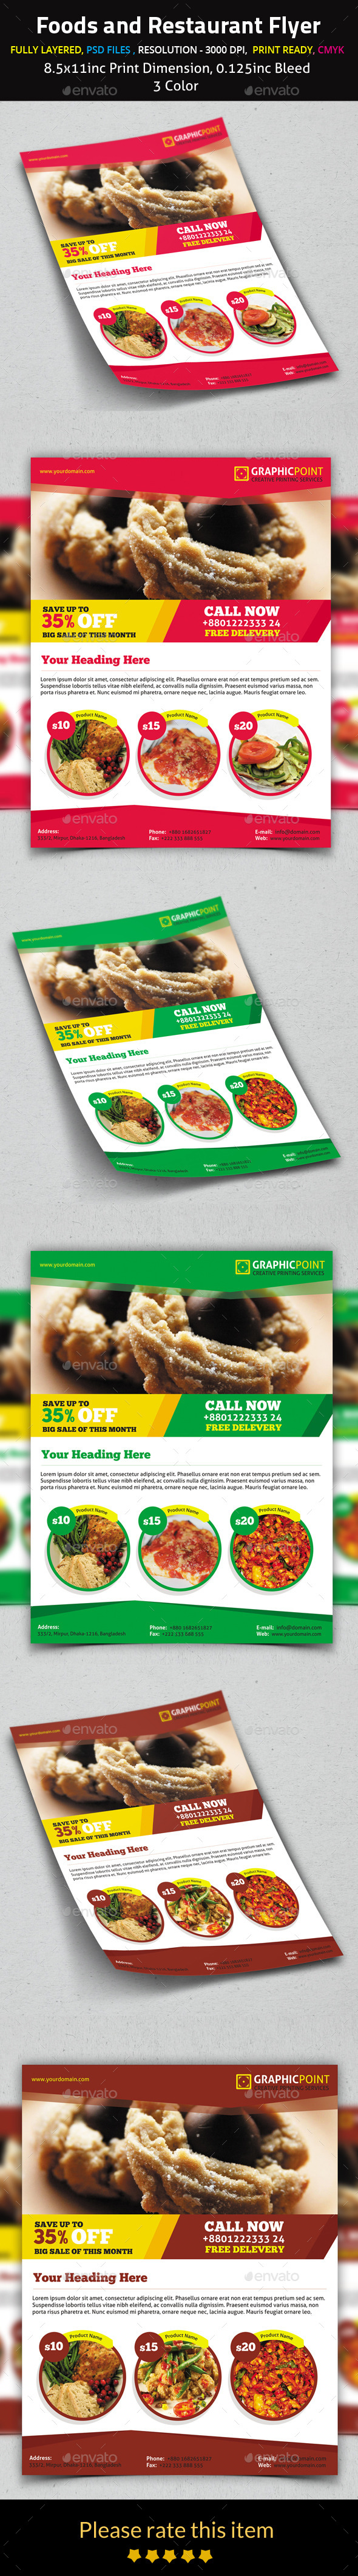 Foods and Restaurant Flyer